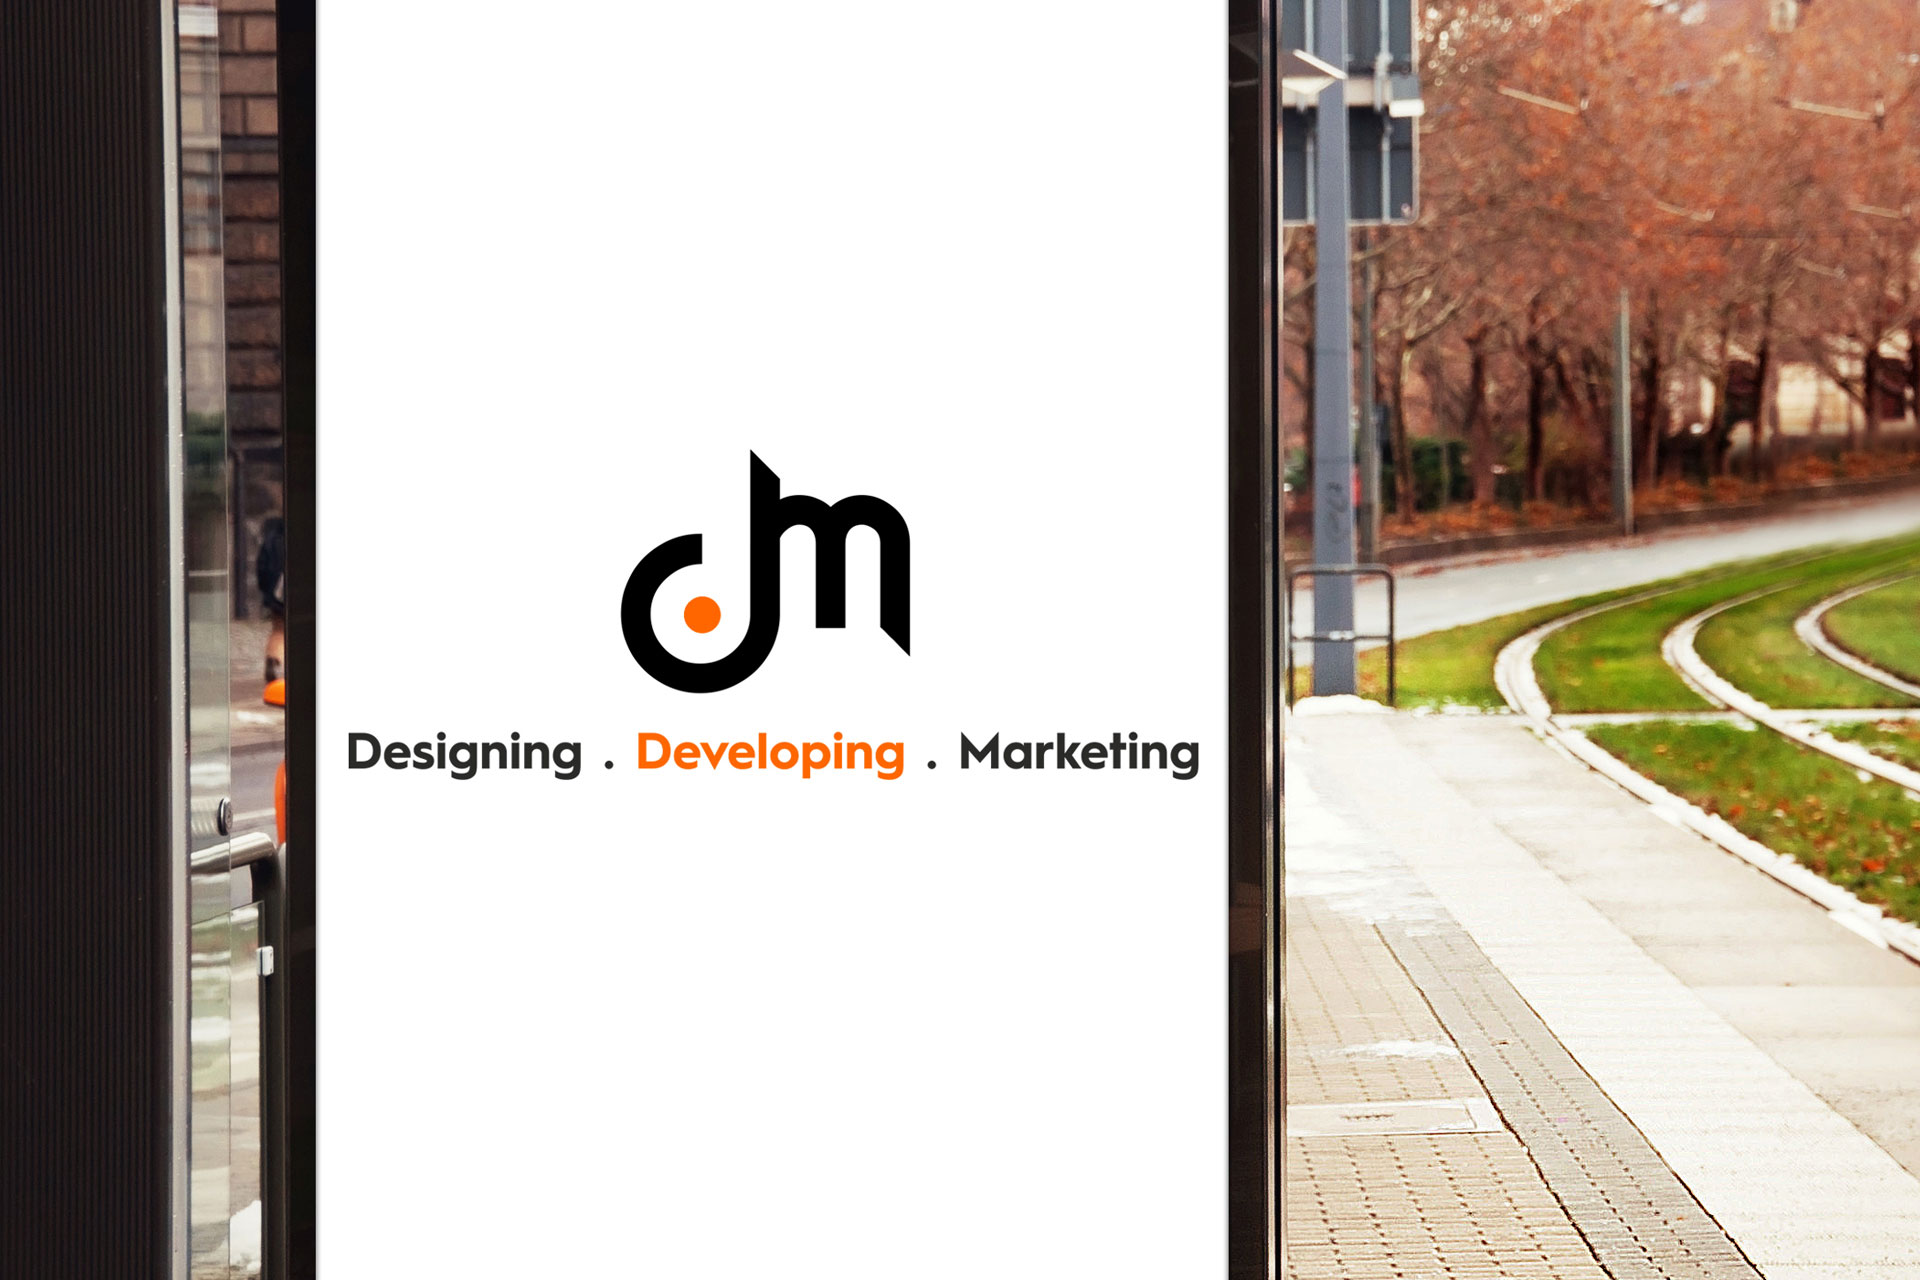 Designing-Developing-Marketing - Graphic Design Portfolio